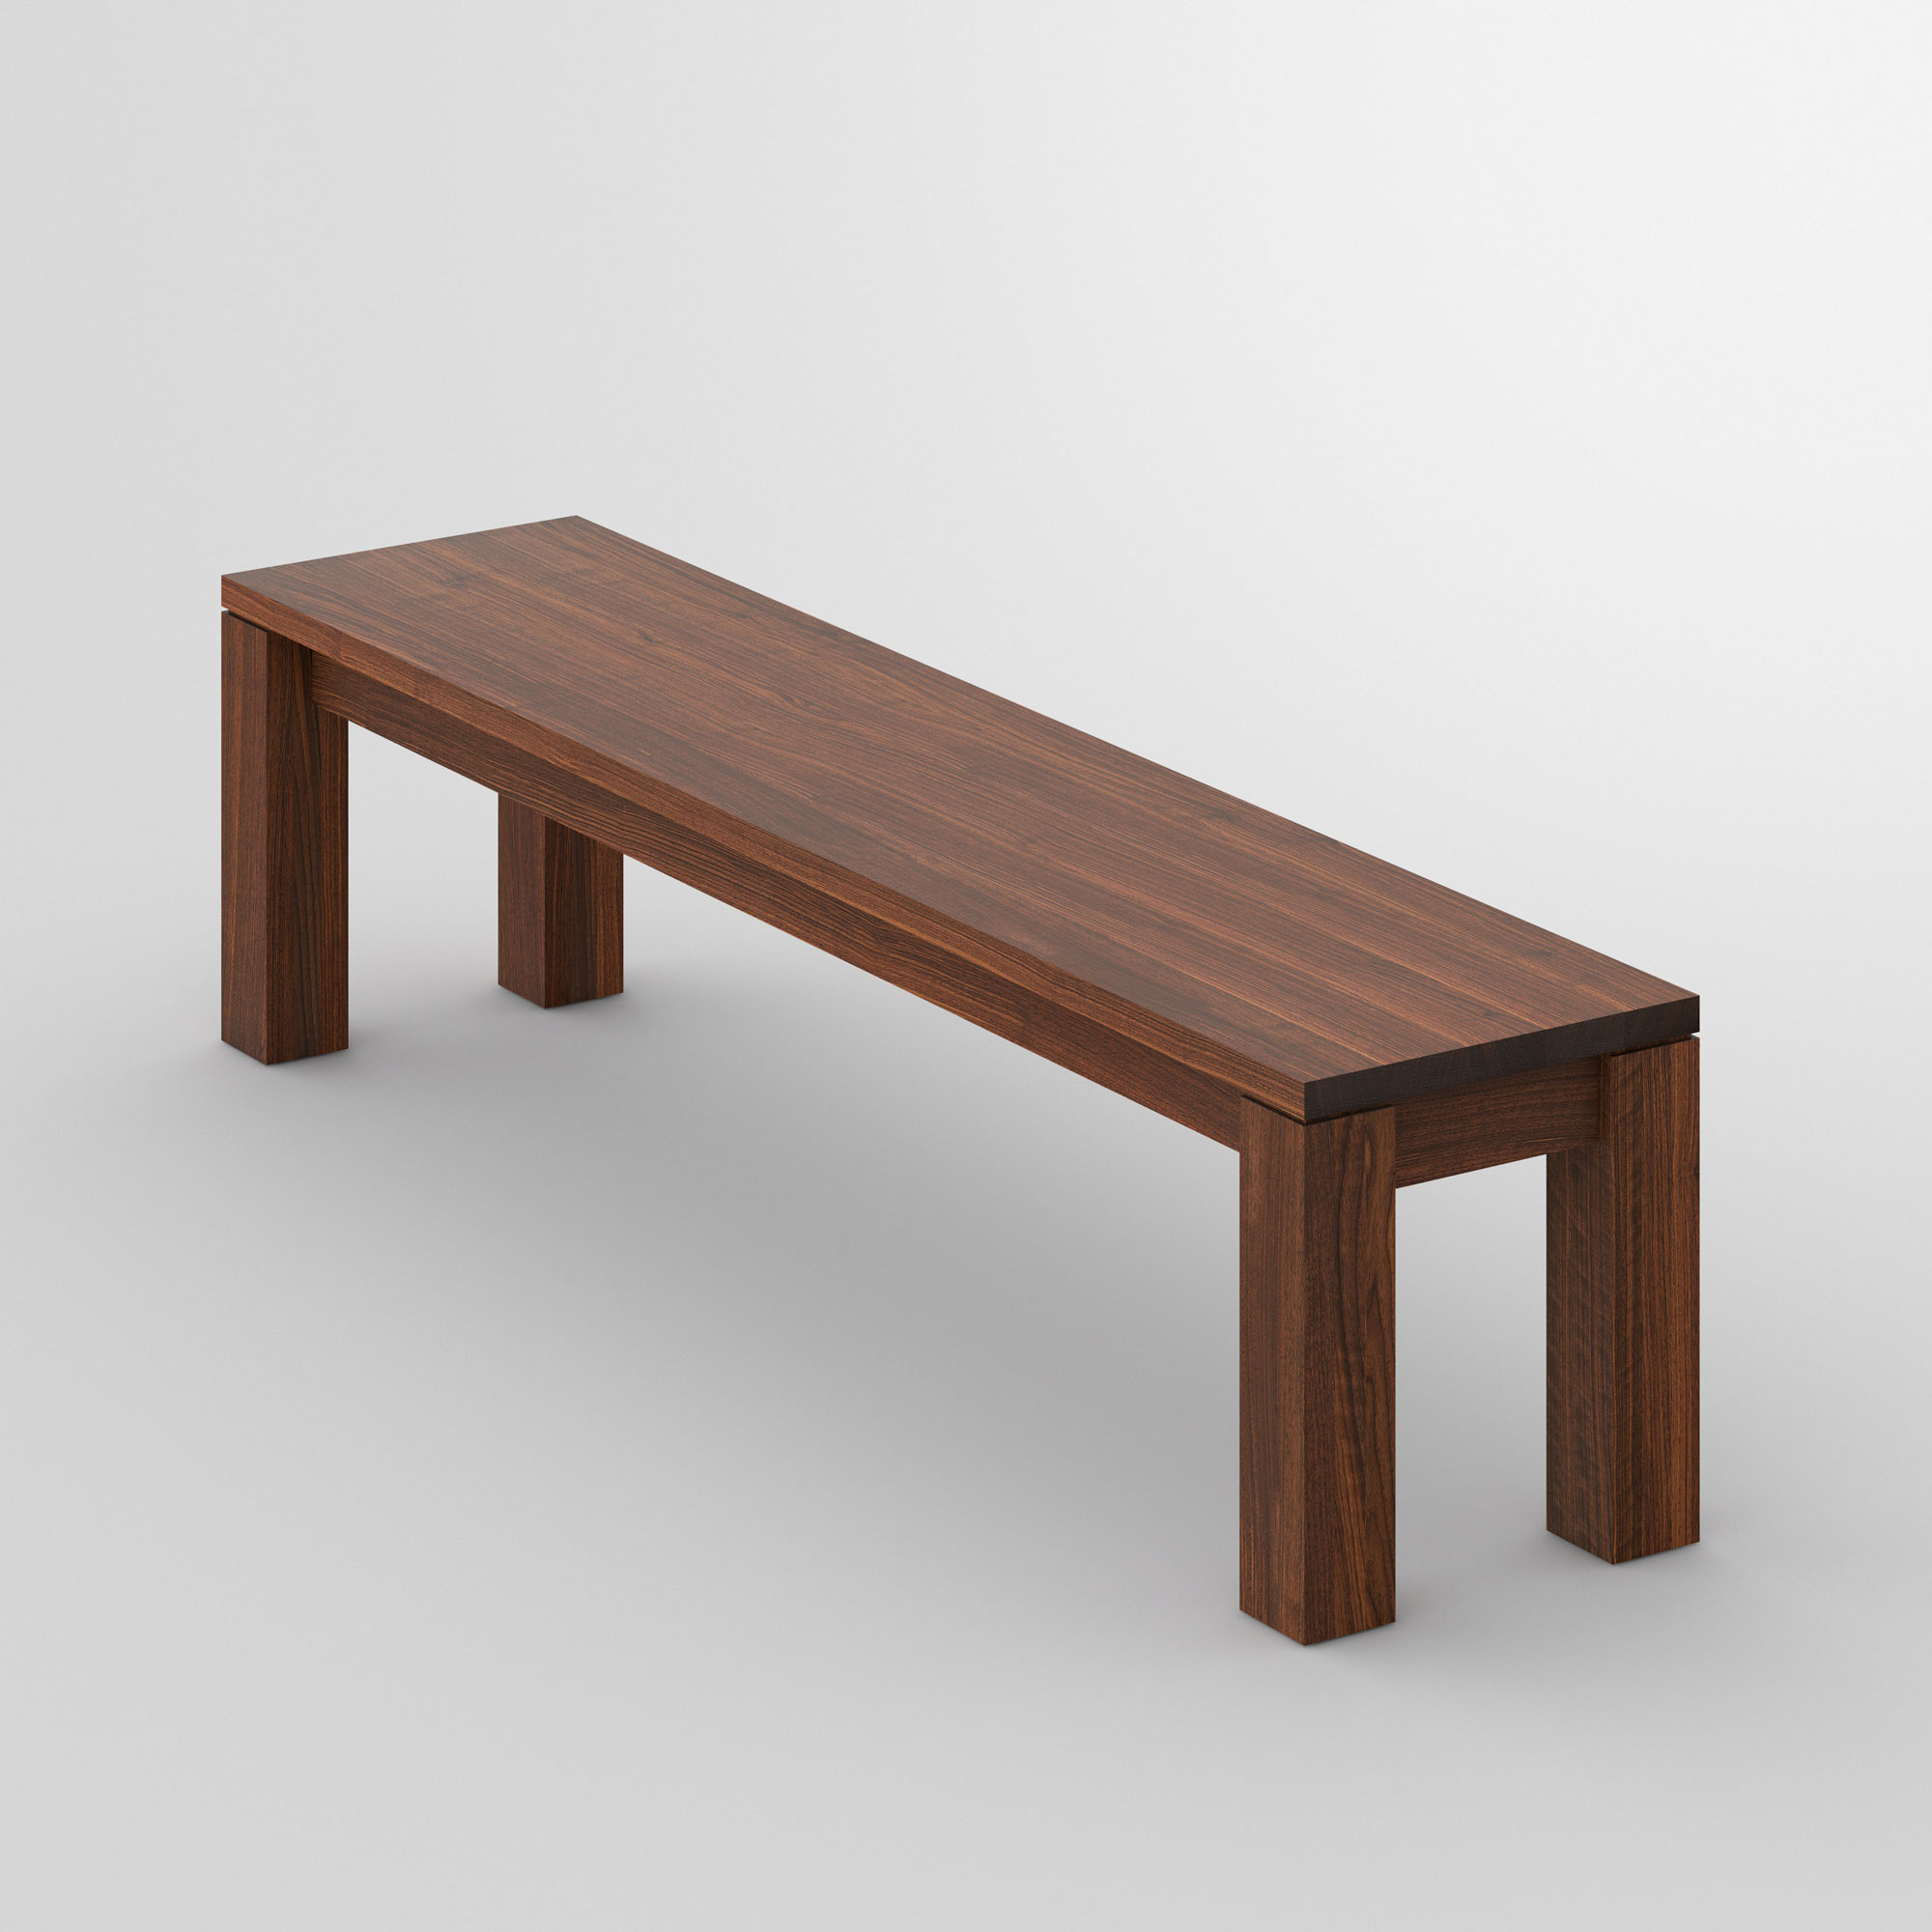 Wood Bench Rustic LIVING cam3 custom made in solid wood by vitamin design